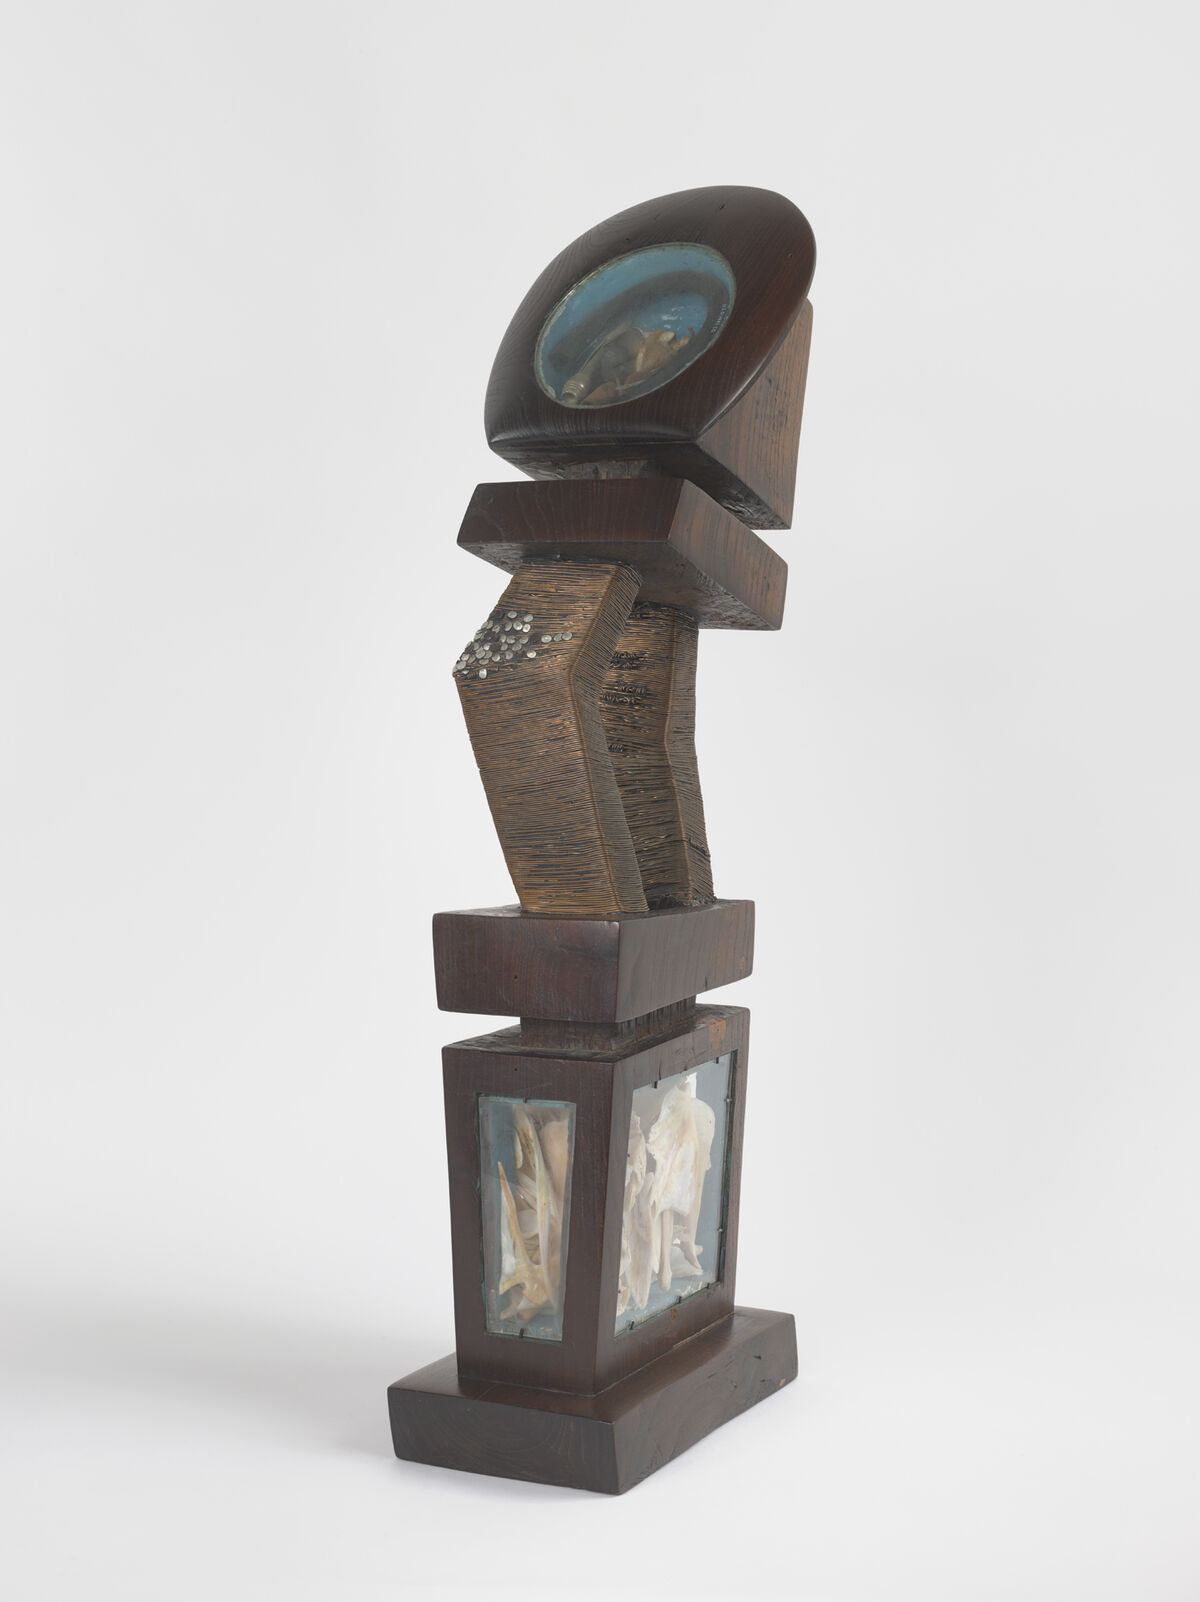 Jack Whitten, Reliquary for Orfos, 1978. Photo by Genevieve Hanson. Courtesy of the artist's estate, Hauser & Wirth, and the Baltimore Museum of Art.